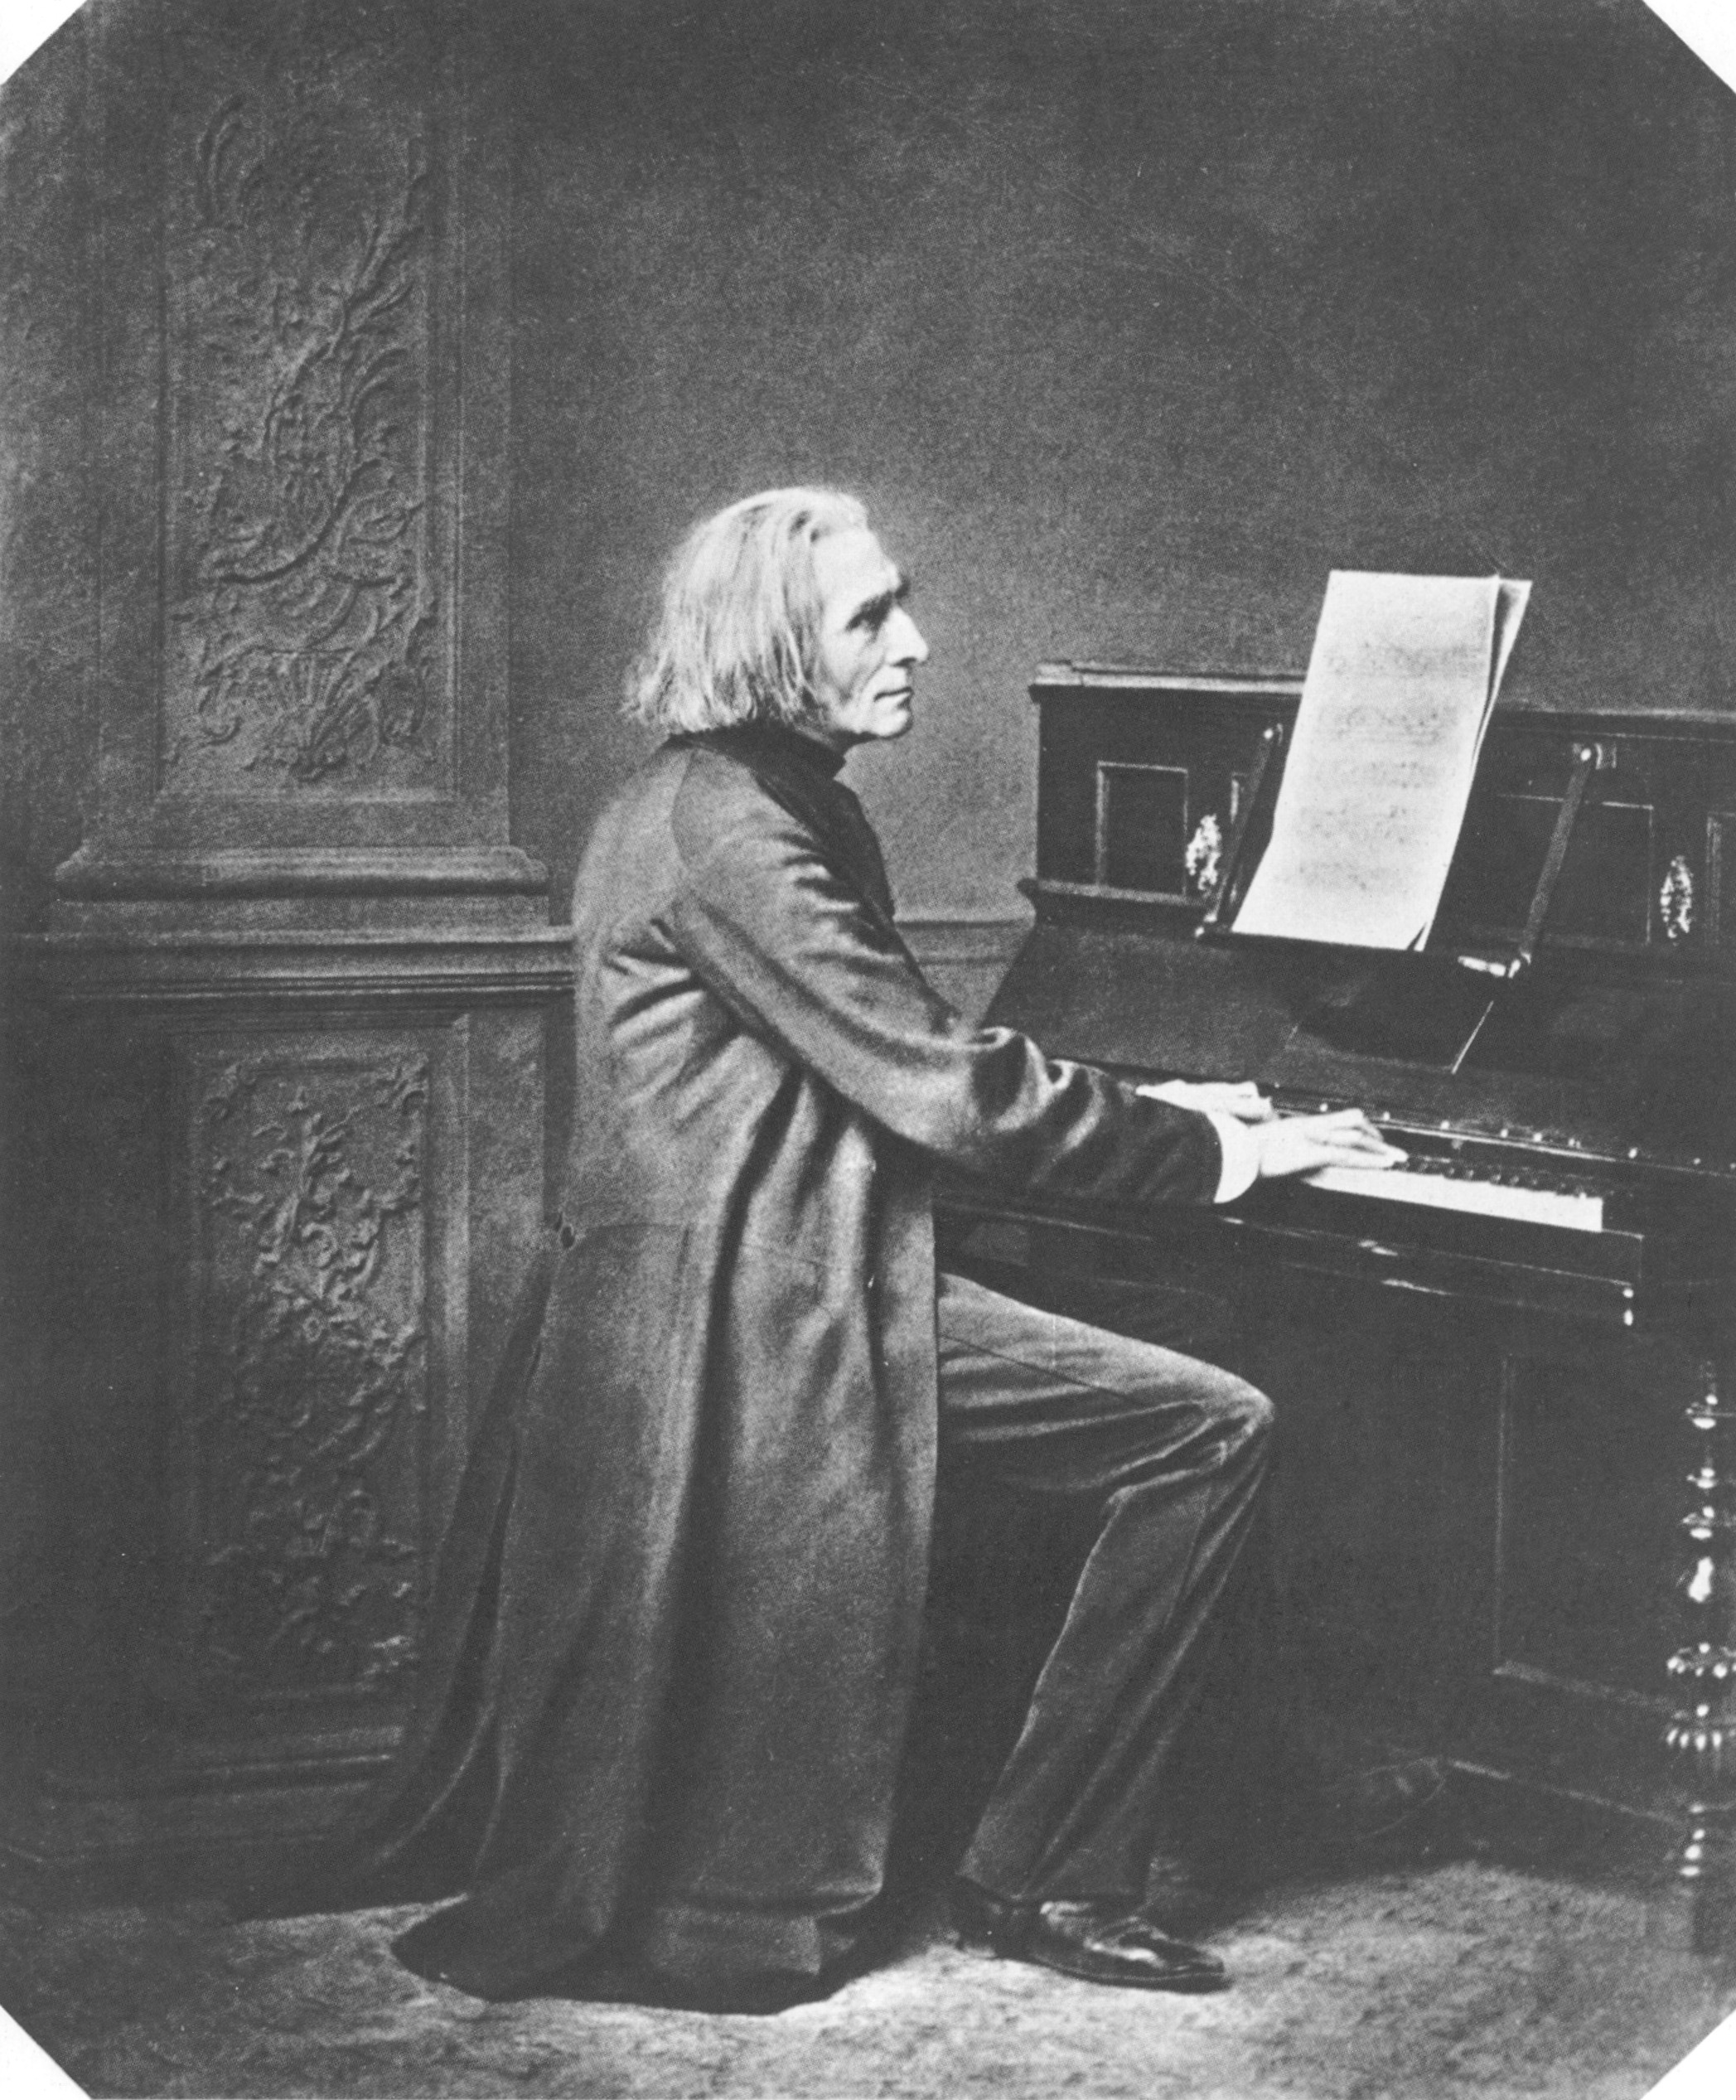 franz liszt Franz liszt (october 22, 1811 – july 31, 1886) was a prolific 19th-century hungarian composer, virtuoso pianist, conductor, music teacher, arranger, organist, philanthropist, author, nationalist and a franciscan tertiaryliszt is widely considered to be the greatest pianist of all time.